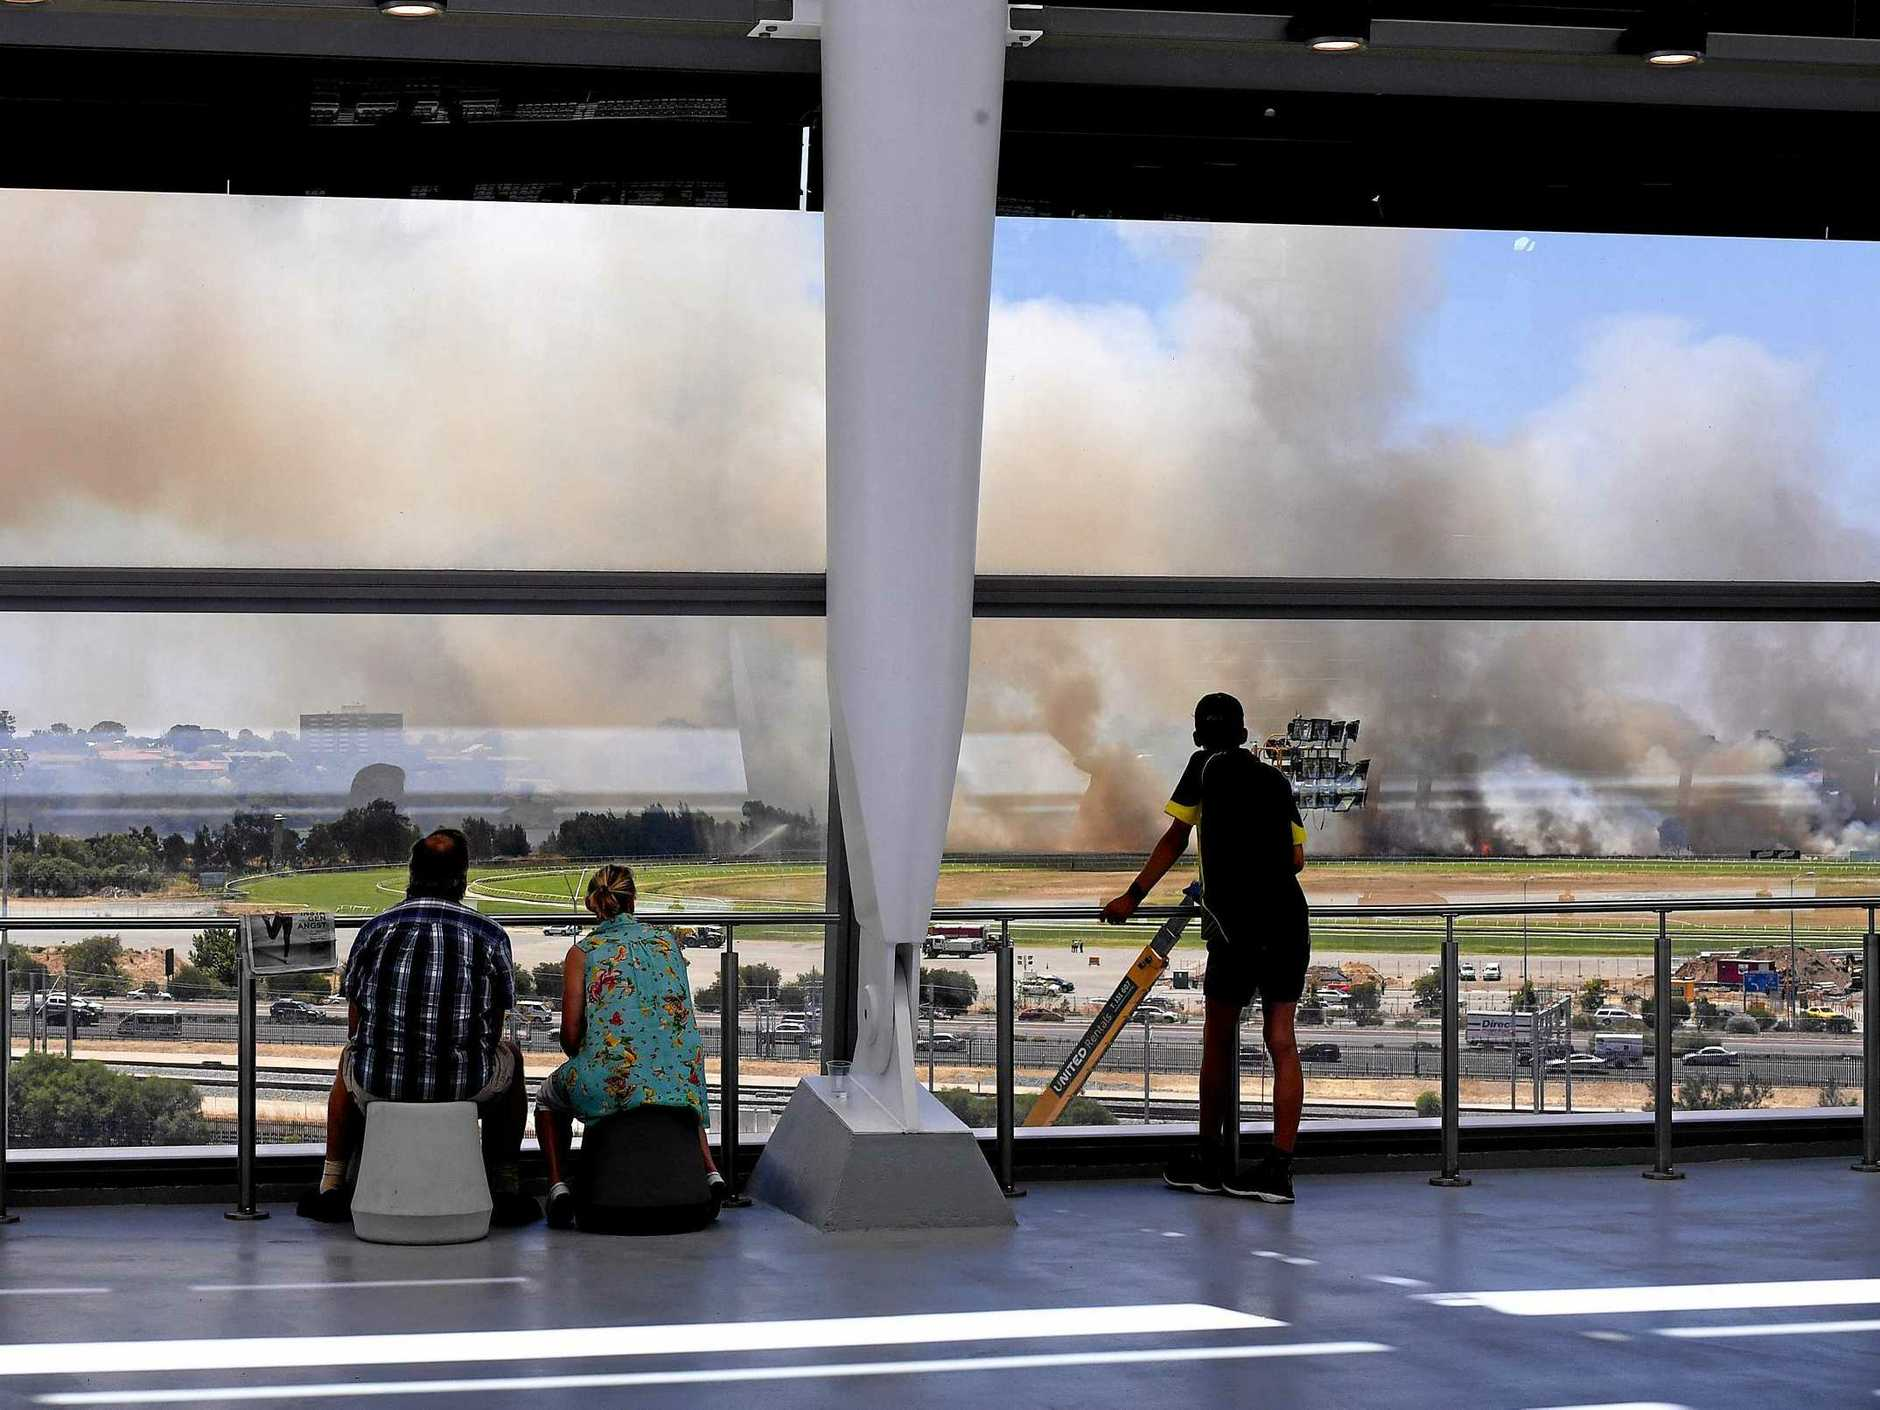 Spectators view a bushfire at Belmont Racecourse from Optus Stadium on day two of the first Test between Australia and New Zealand. Picture: Dave Hunt/AAP